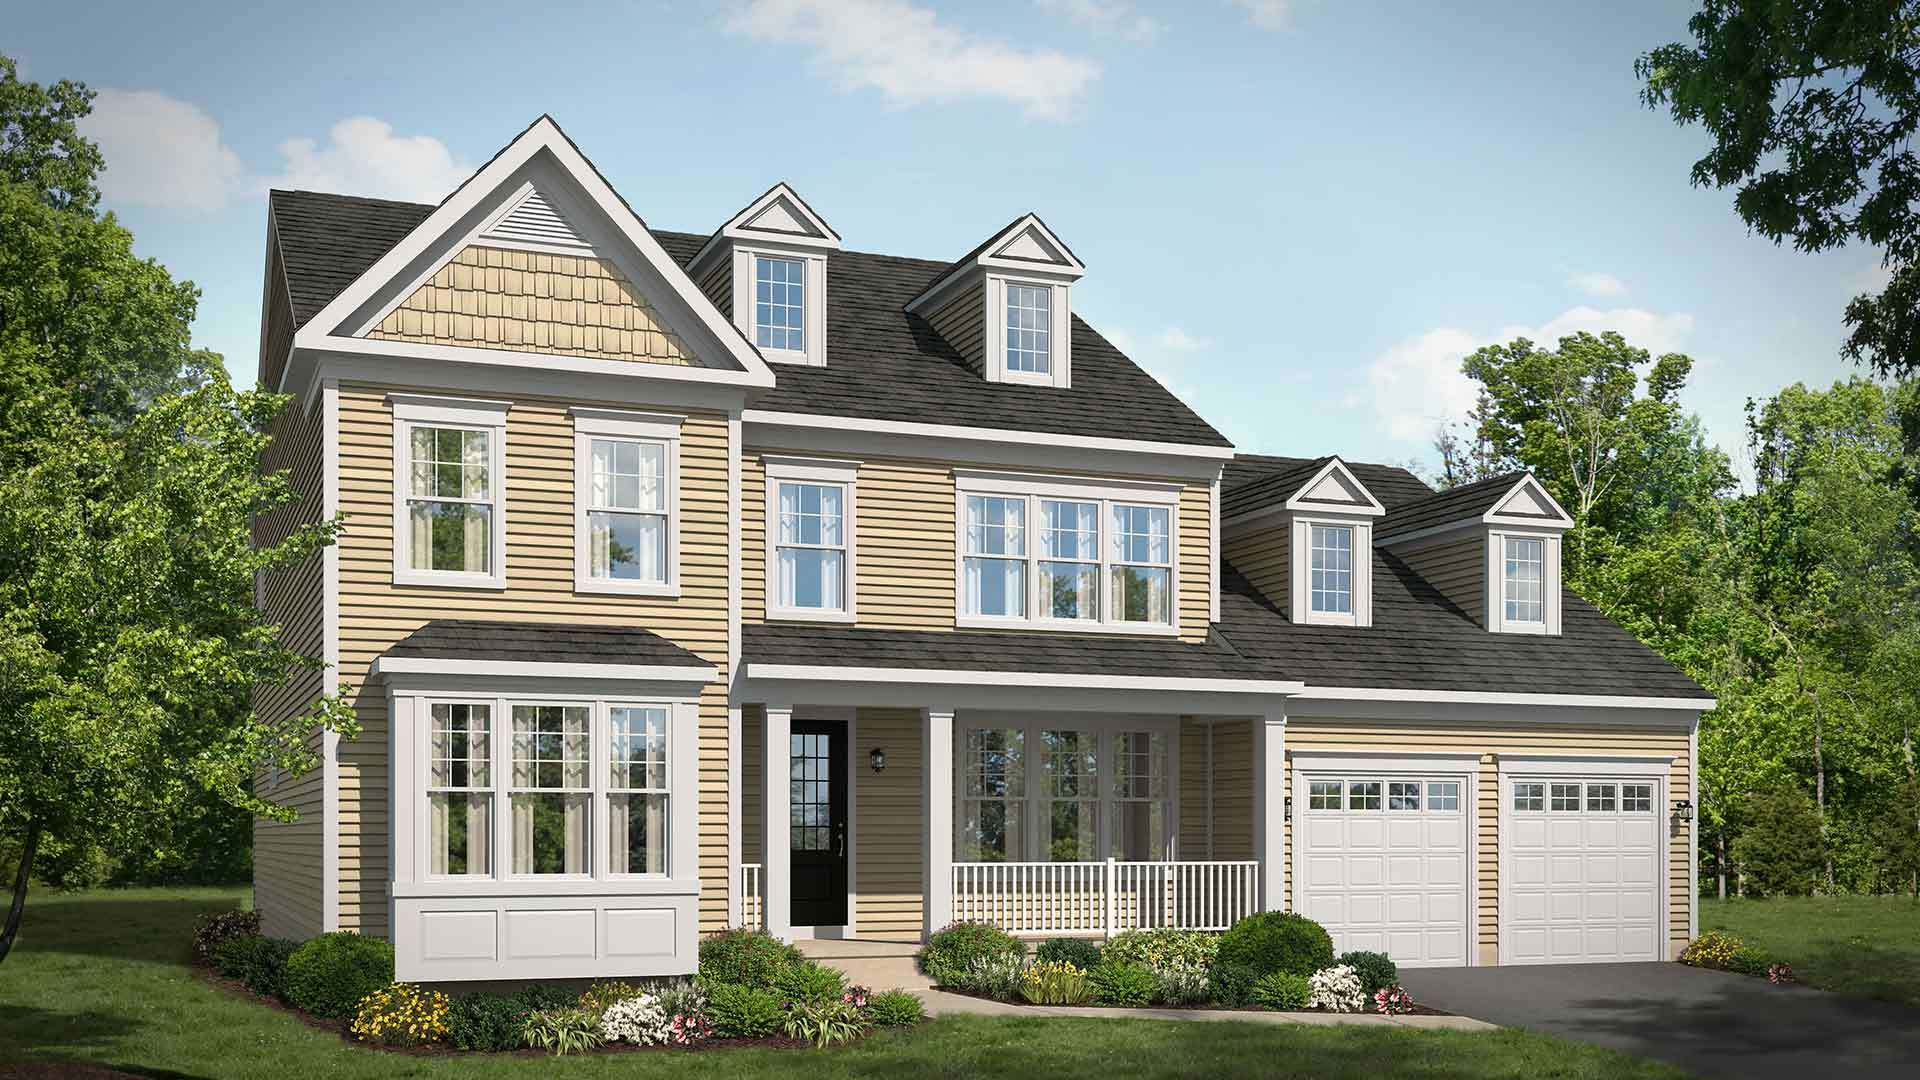 Stanley martin homes ethan 39 s meadow morgan ii 1361418 for Modern homes raleigh durham